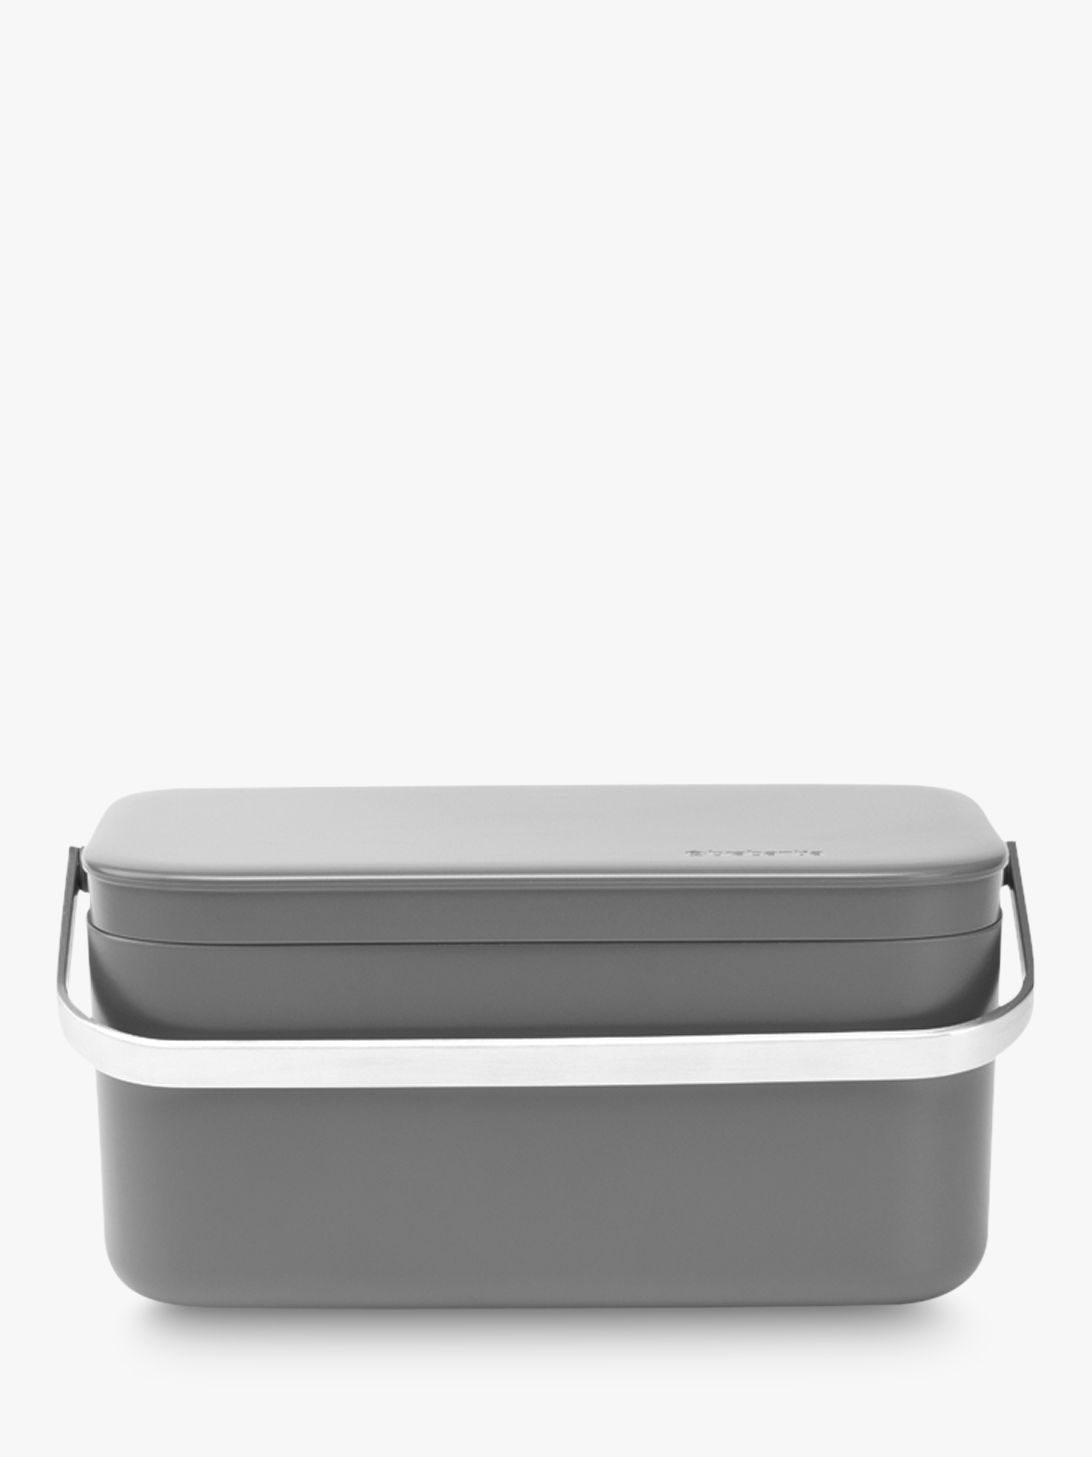 Brabantia Brabantia Compost Food Waste Caddy, 1.8L